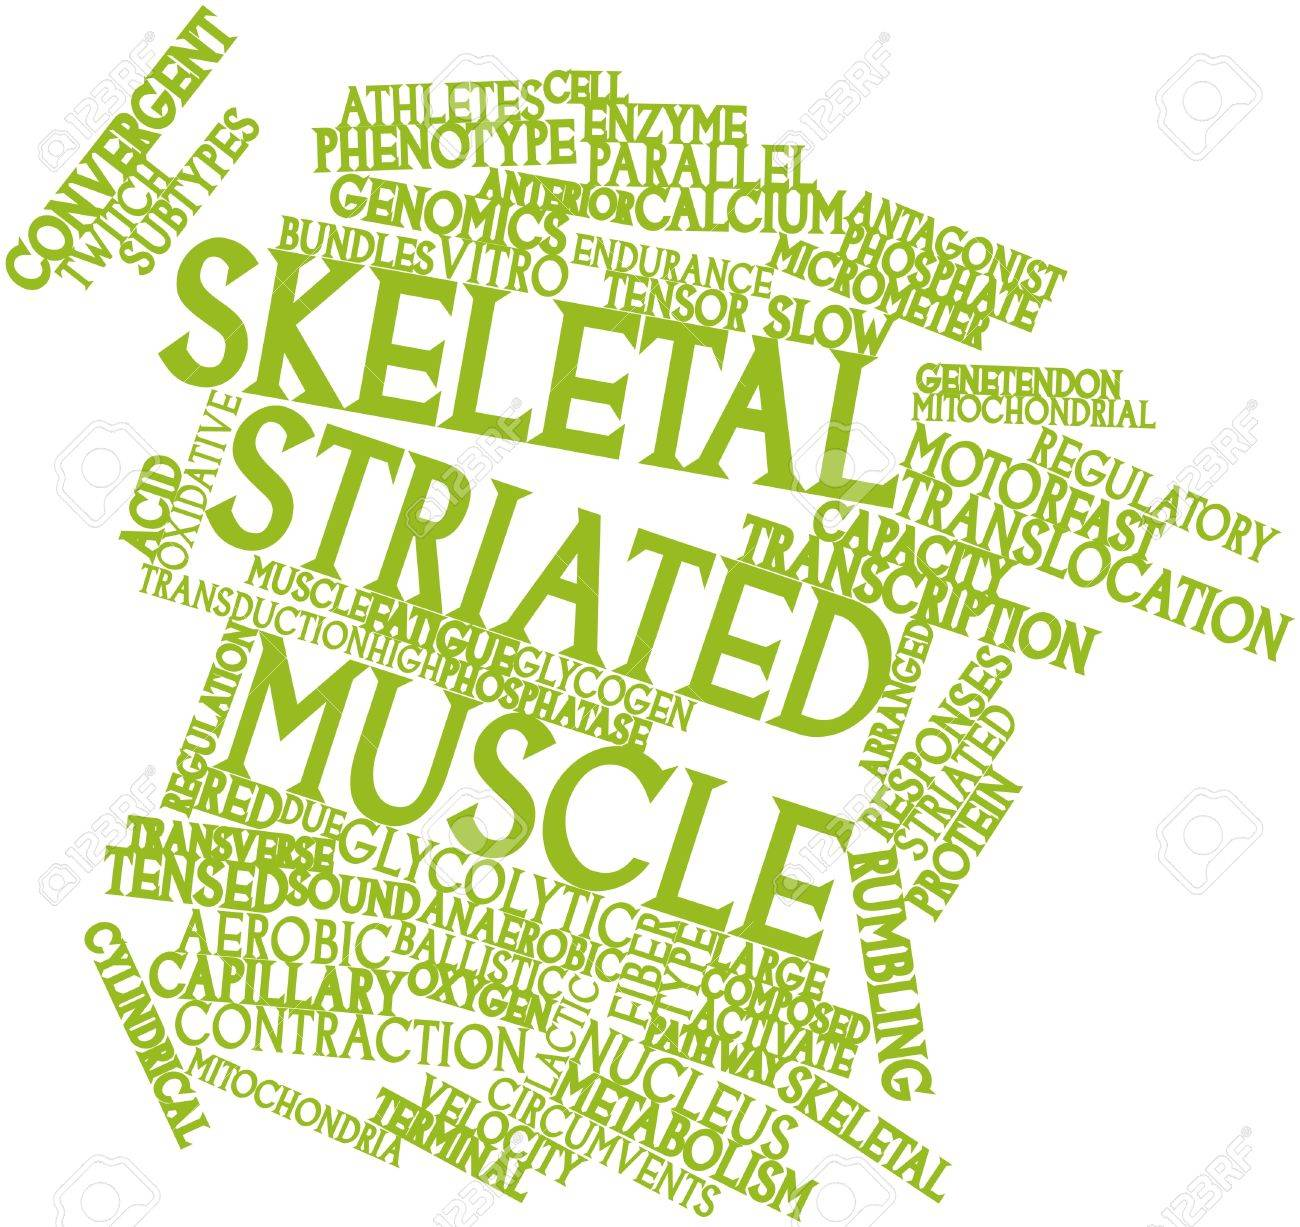 abstract word cloud for skeletal striated muscle with related